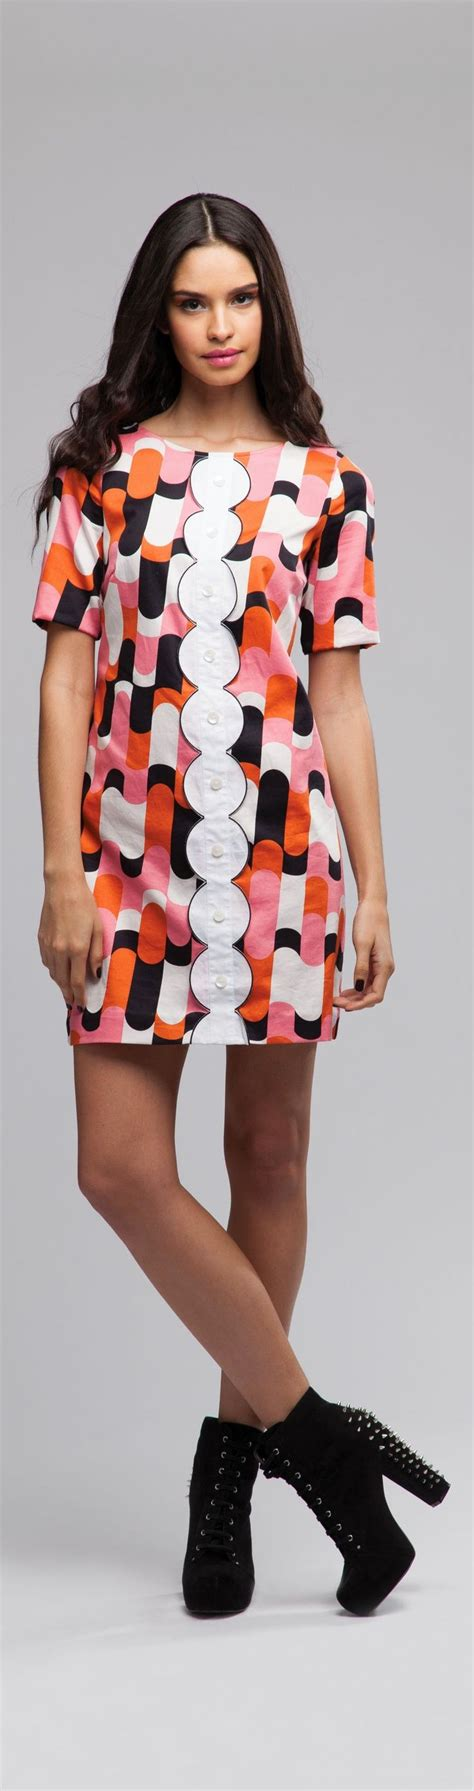 Get Mod Chic To Rival The 60s Pin Ups by 60s Fashion Style 1964 Mod Dresses Go Go Boots Quant